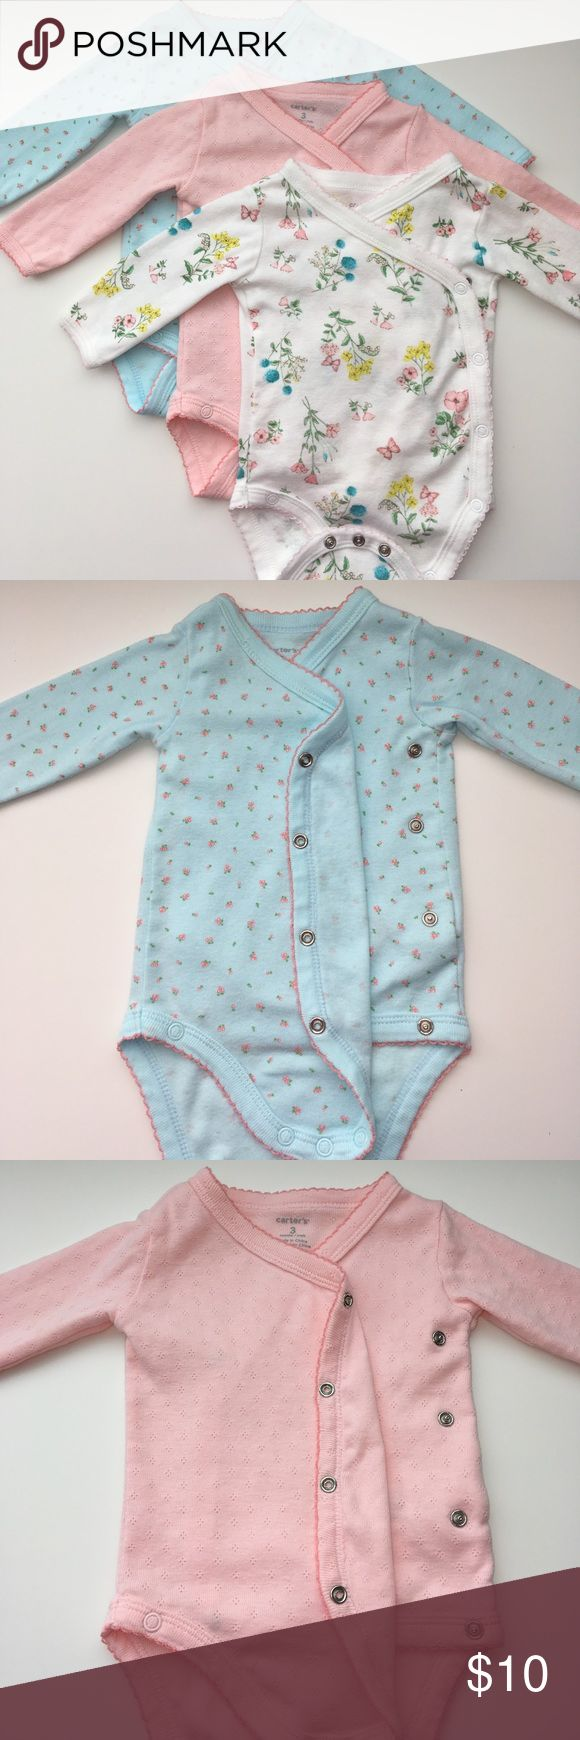 🎀Carter's Side Snap Onesie Set🎀 Used - good condition. Carter's baby girl side snap onesie set size 3 months. Includes one light blue, peach, and white with flowers. Clean and no stains or rips. Carter's One Pieces Bodysuits